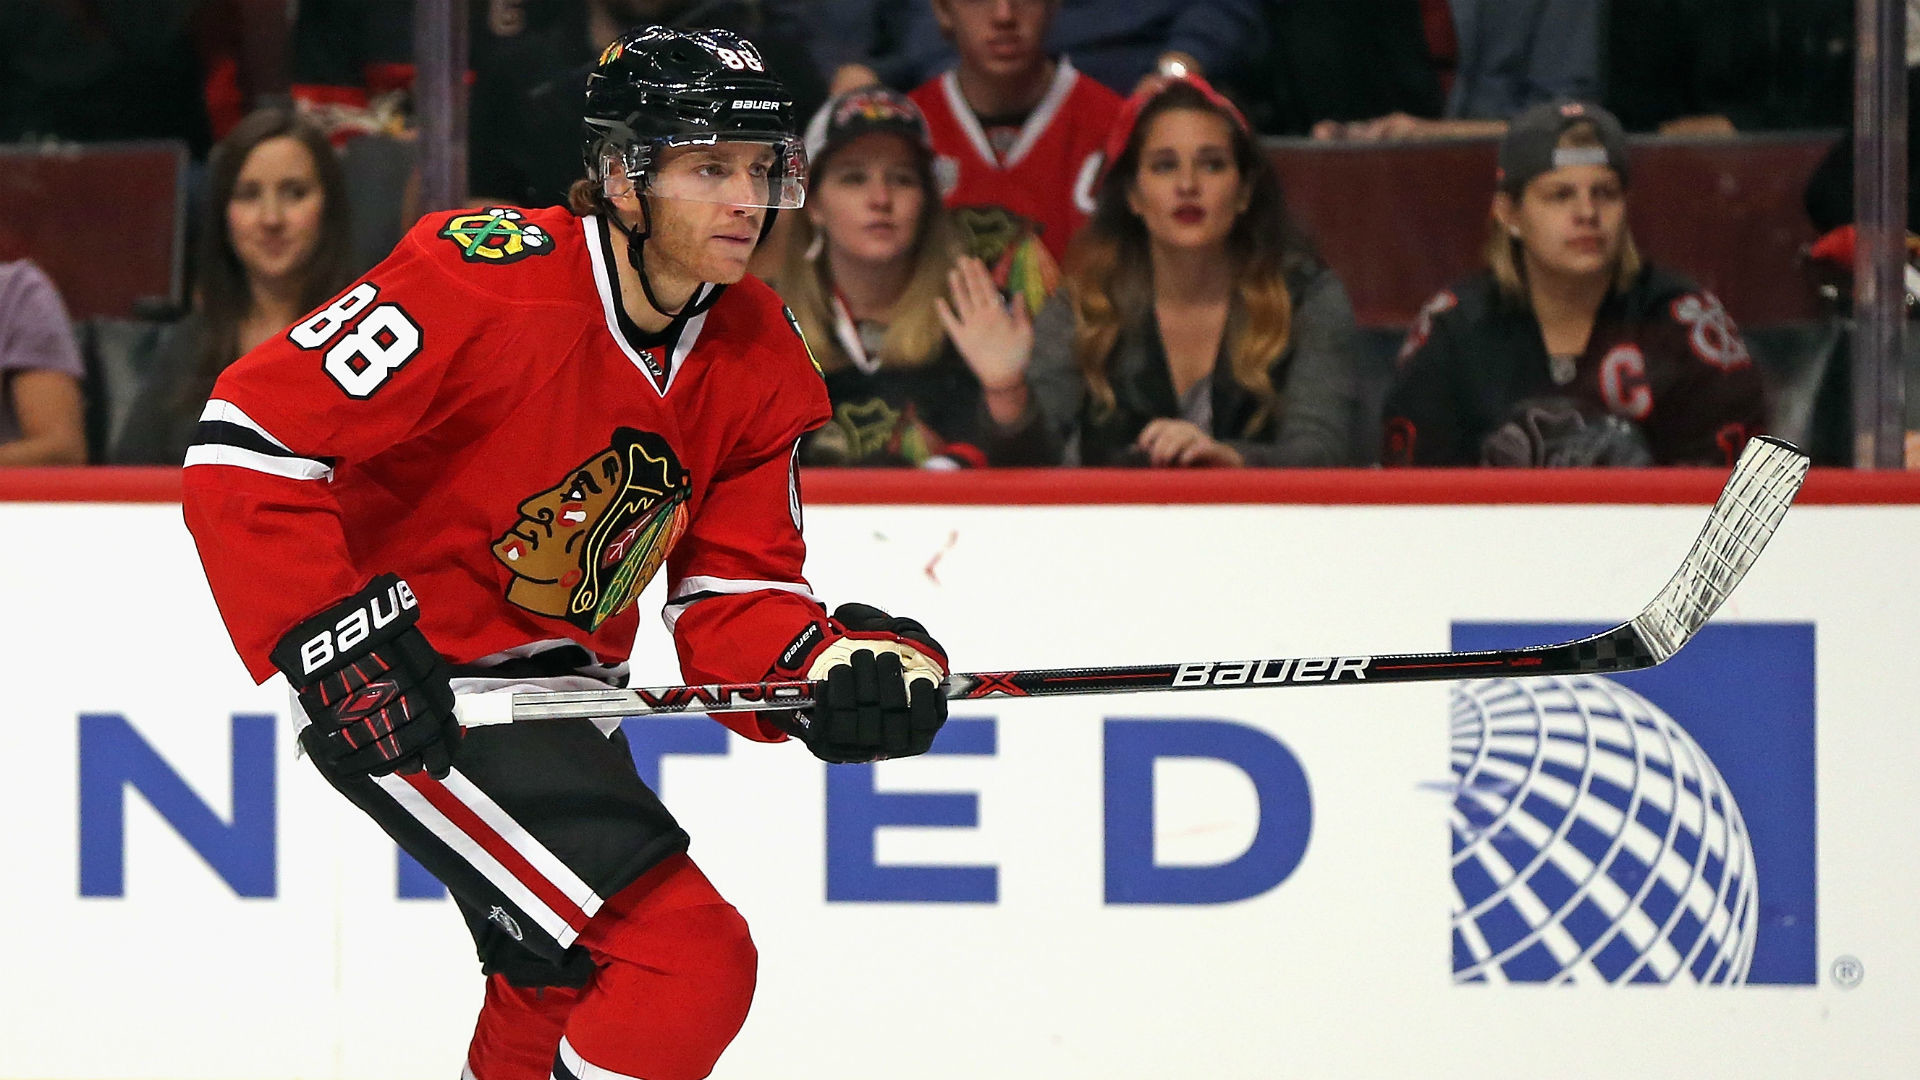 Leaked 'evidence' in Patrick Kane case was hoax, district attorney says |  NHL | Sporting News